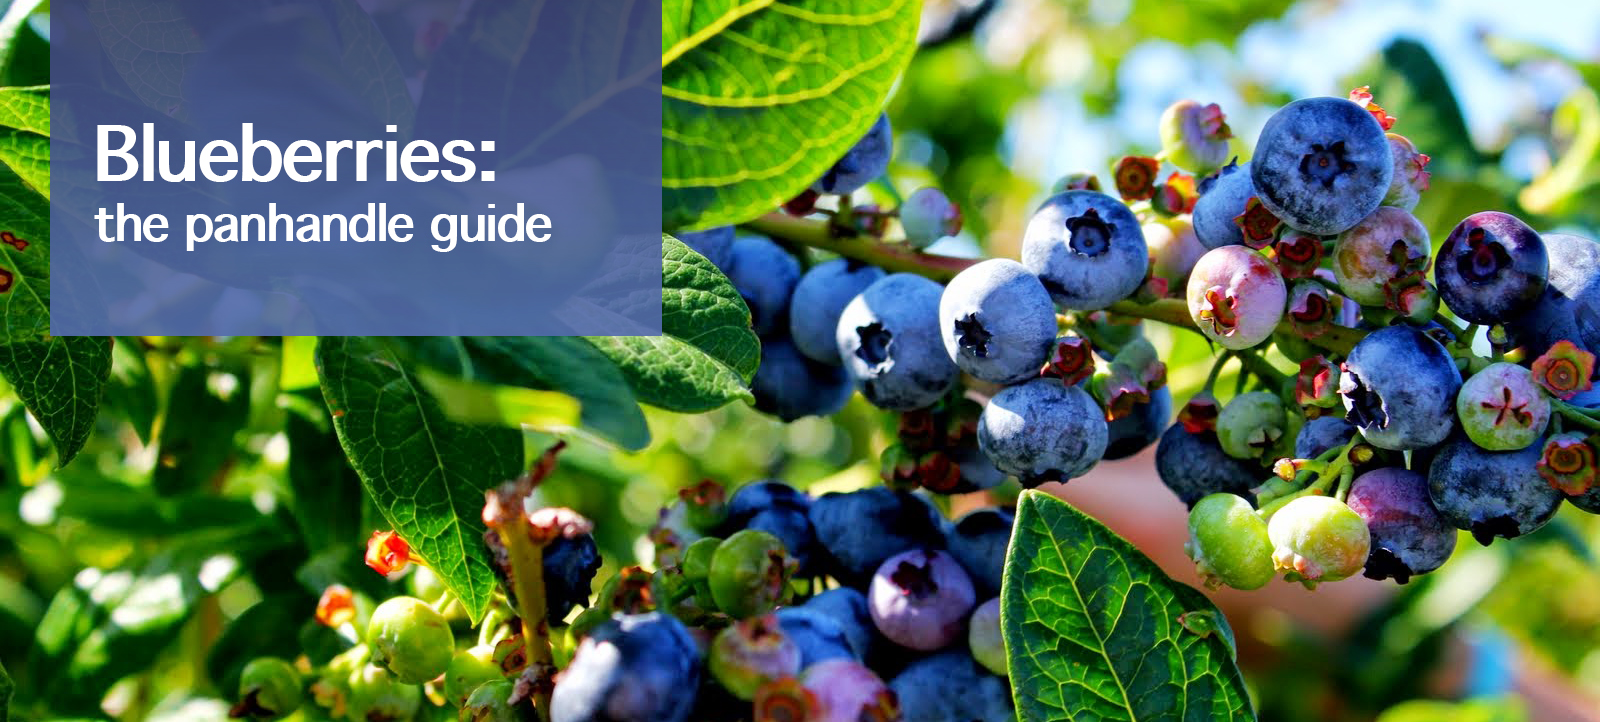 Blueberries: The Panhandle Guide